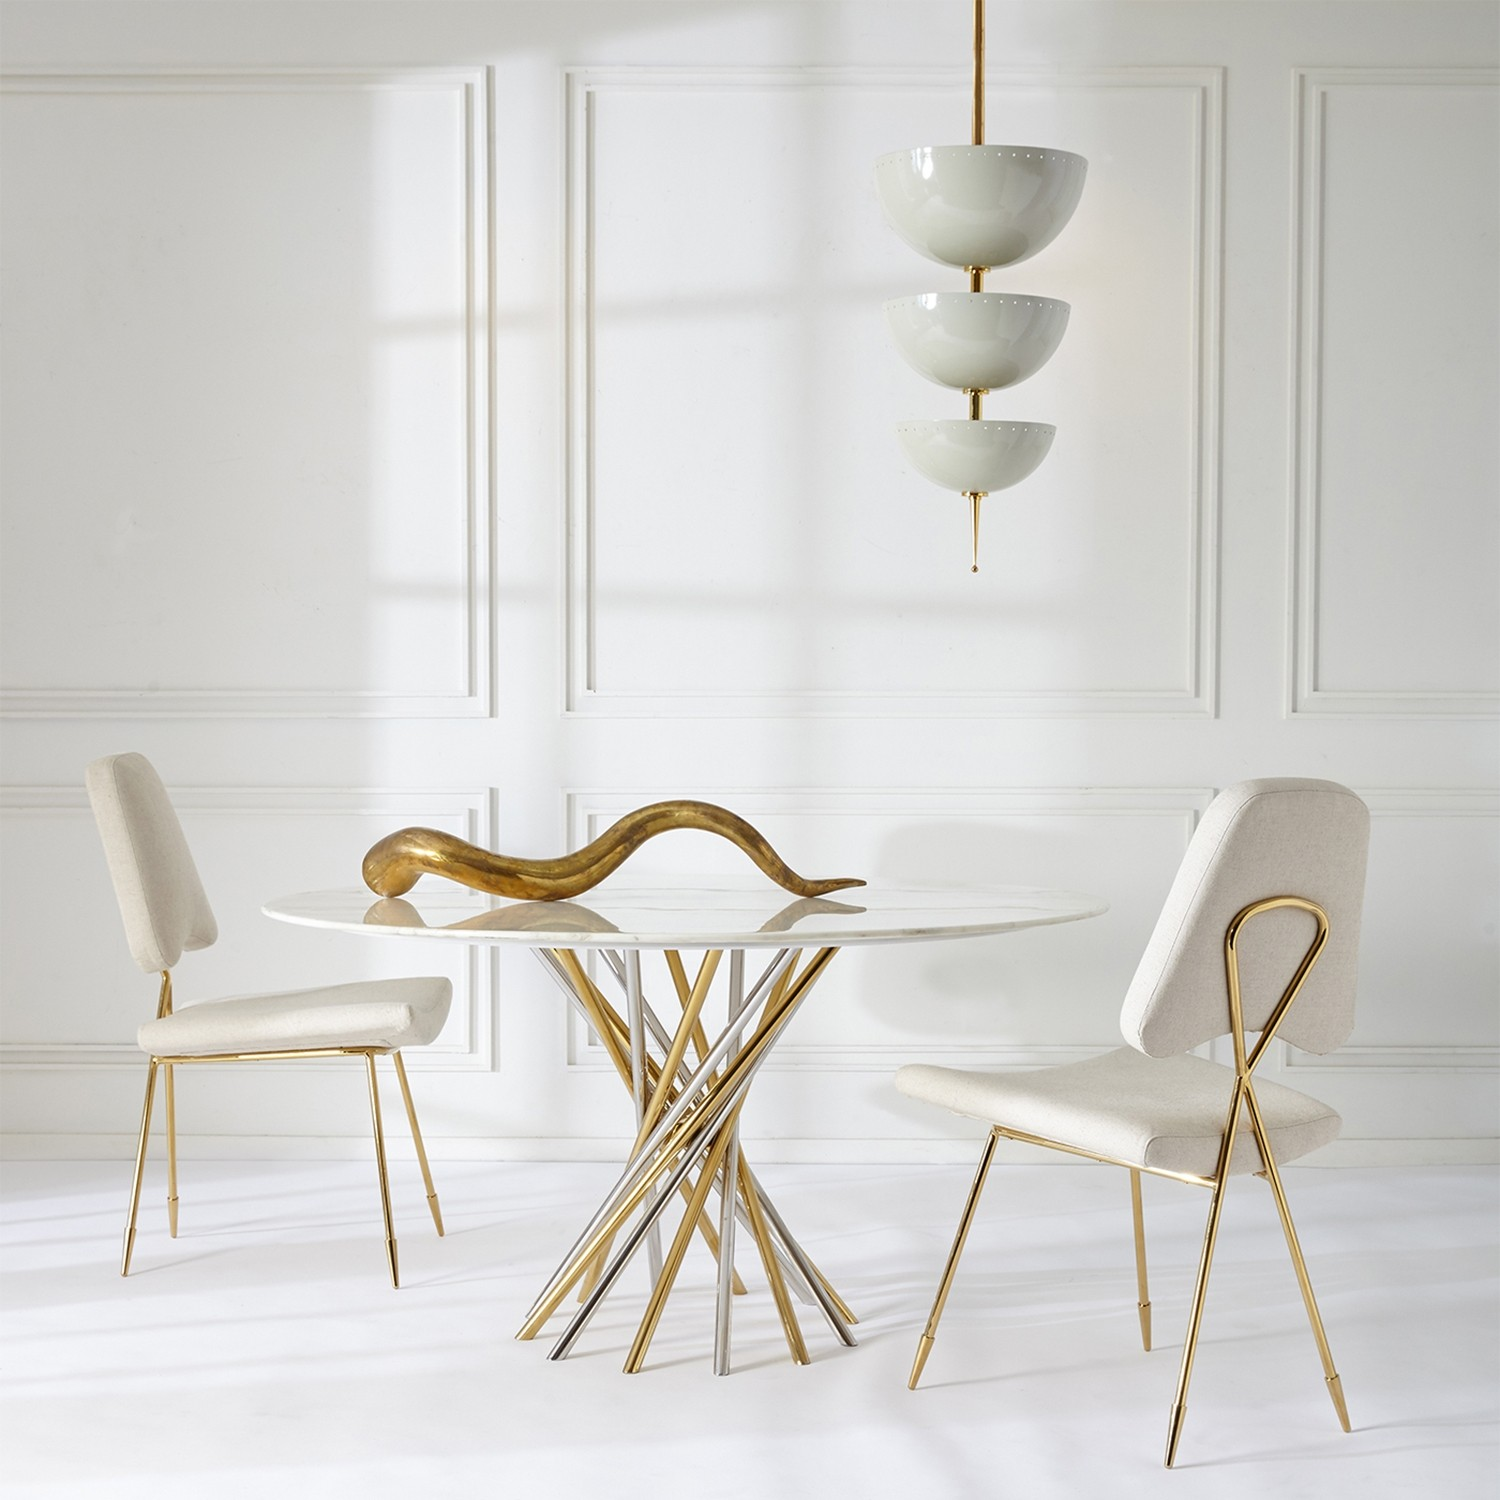 modern chairs, dining chairs, armchairs, interior design, luxury furniture, ebook, dining room chairs, upholstered dining chairs, living room, dining room modern chairs 100 Modern Chairs Ideas for your Home Decor electrum dining table styled 2